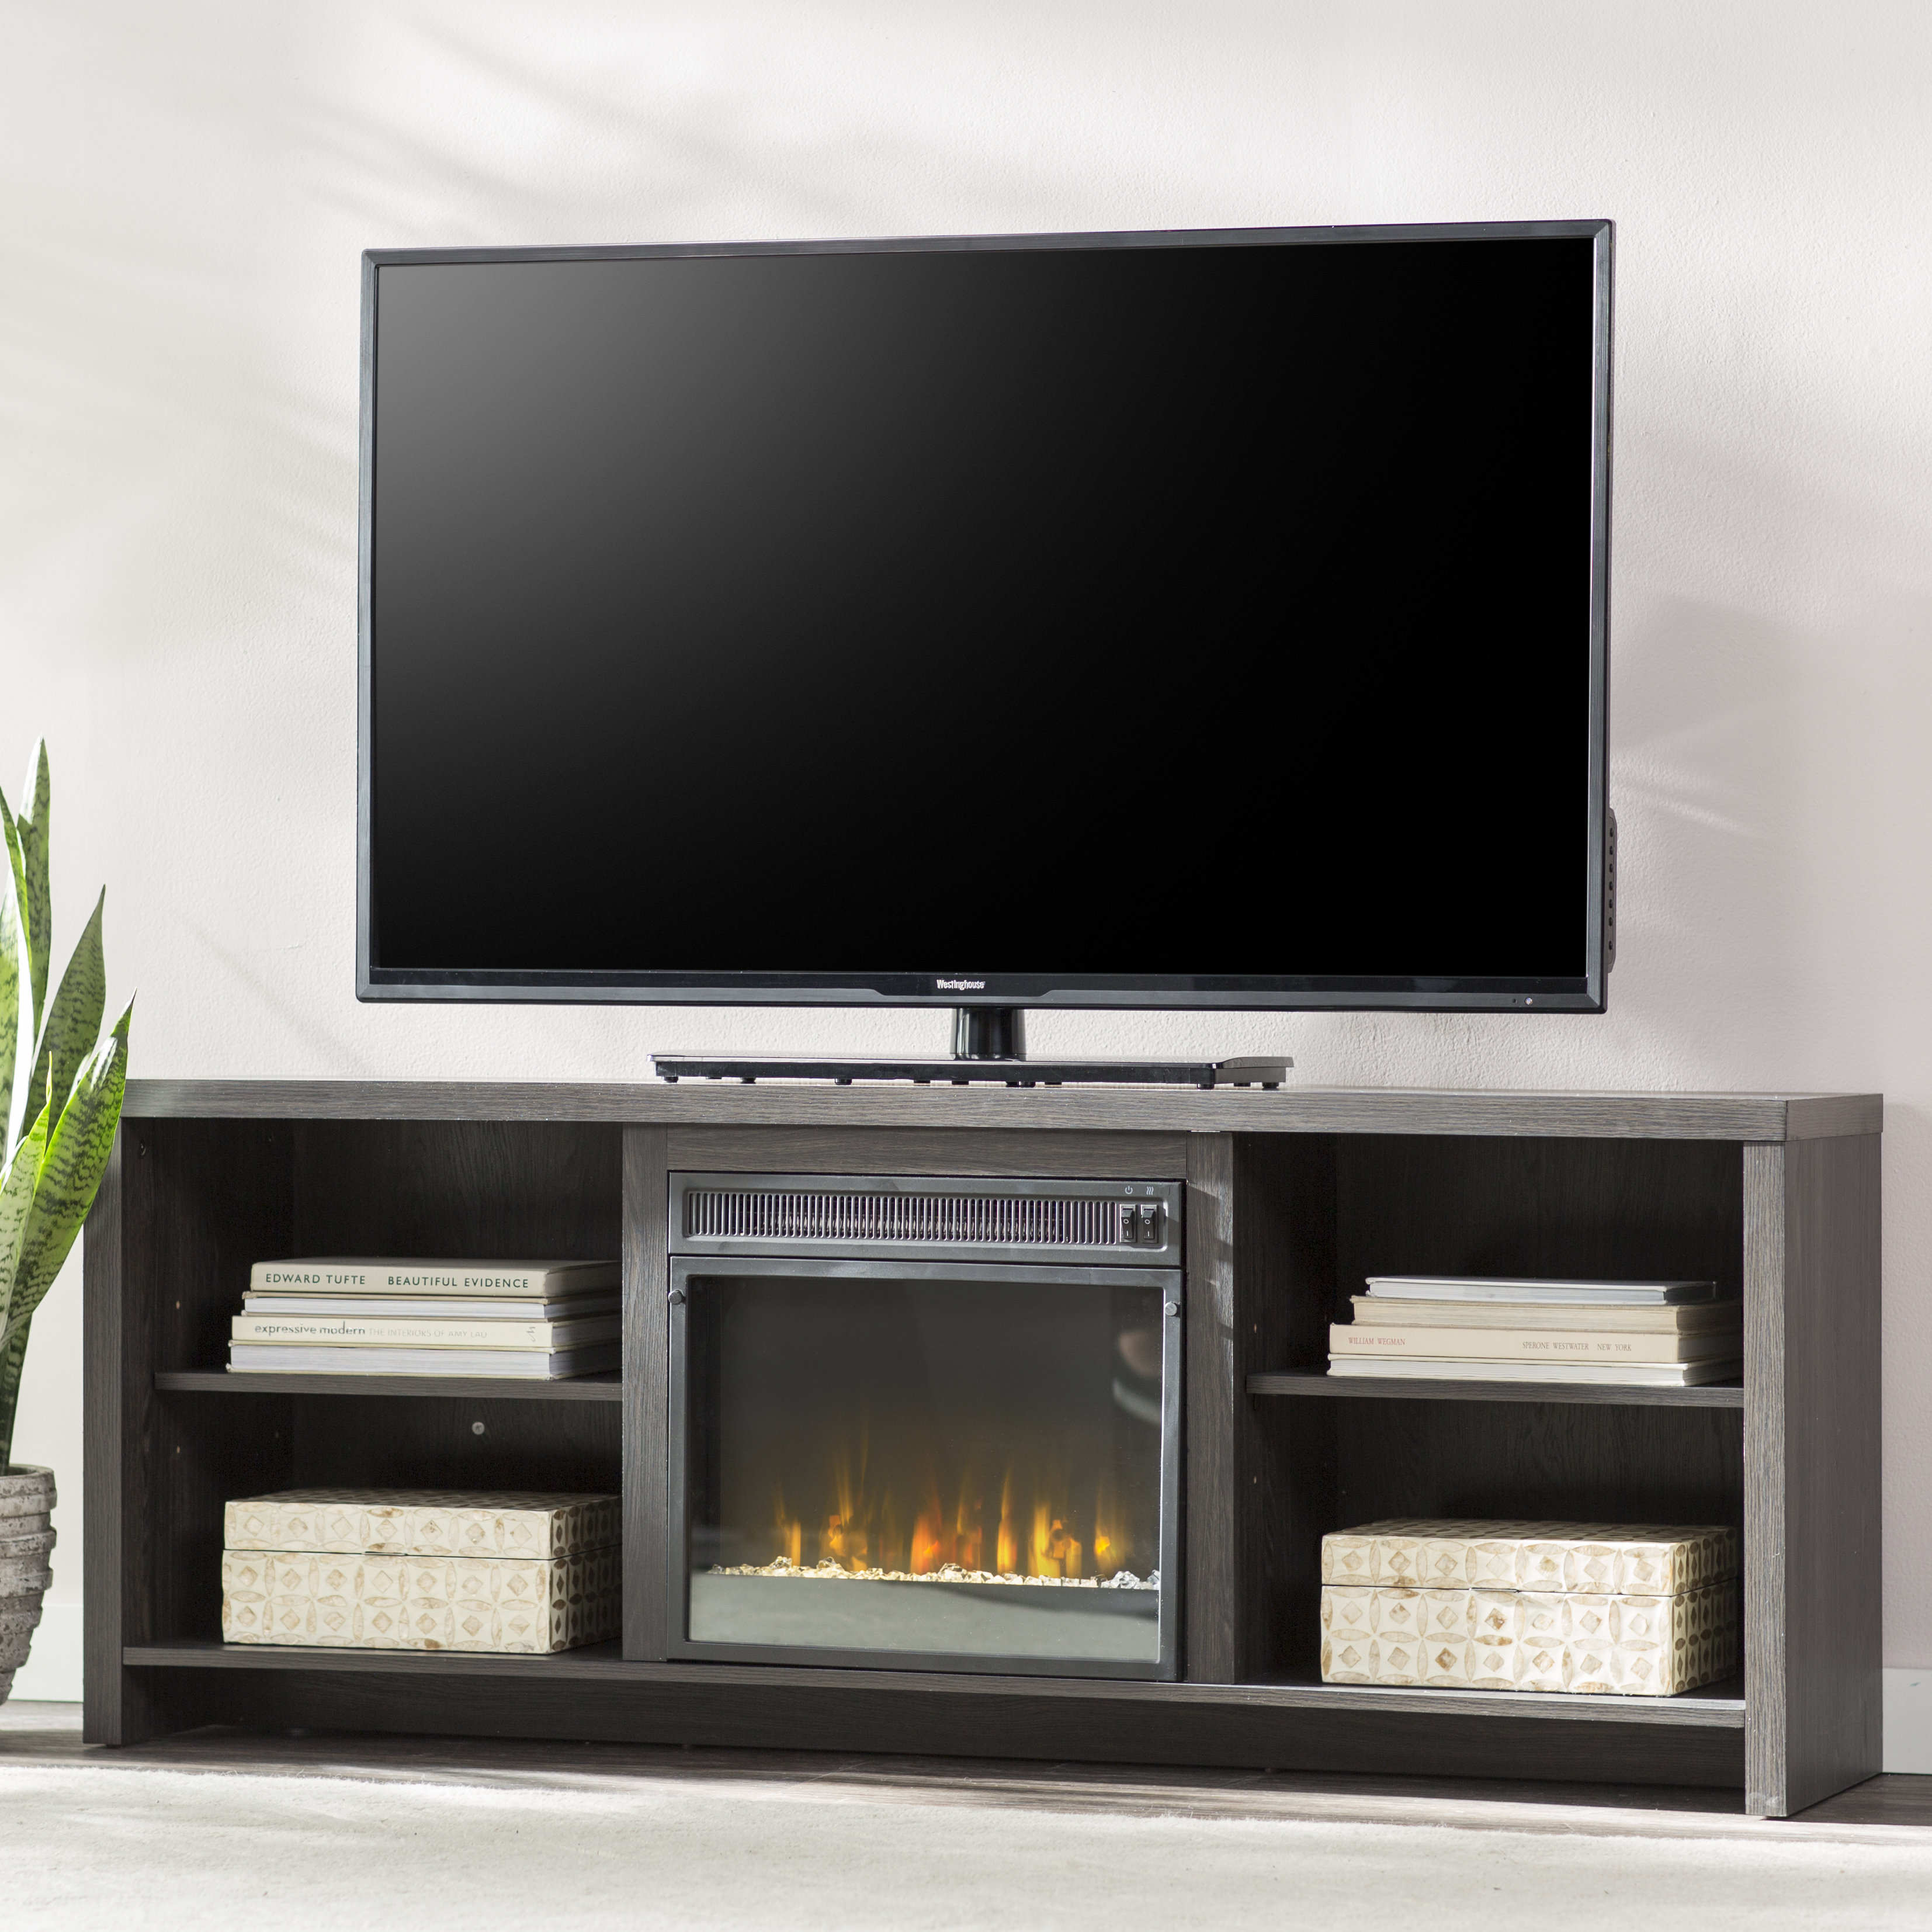 Fireplace Tv Stands & Entertainment Centers You'll Love | Wayfair.ca pertaining to Sinclair Blue 74 Inch Tv Stands (Image 11 of 30)